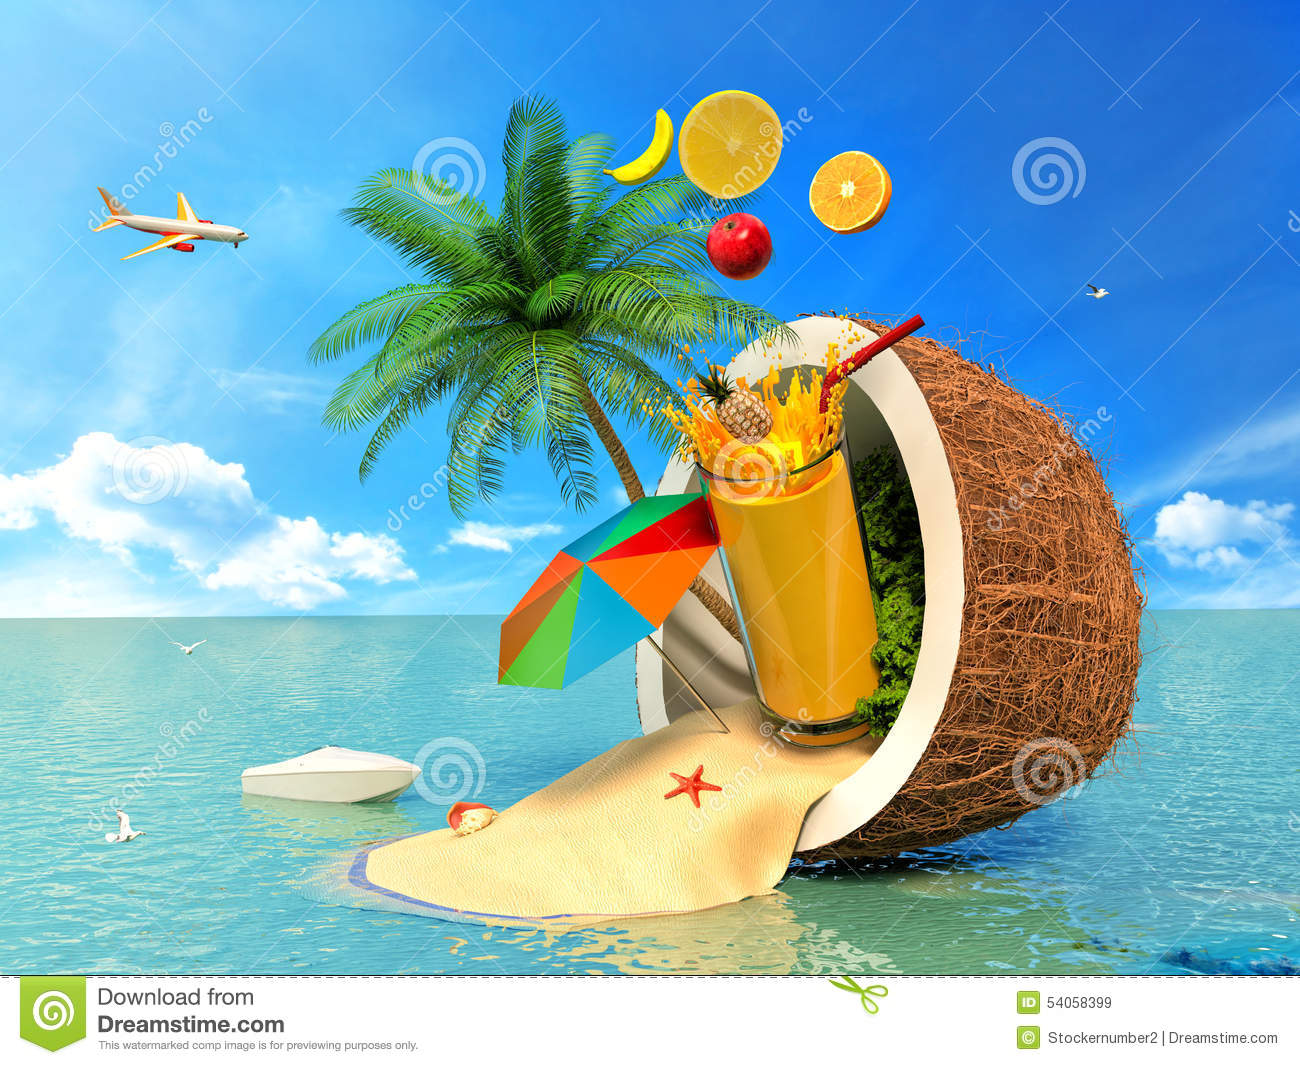 Summer travel card in retro style vintage vacation postcard with - The Concept Of Vacation Coconut Beach Umbrella And Fruit